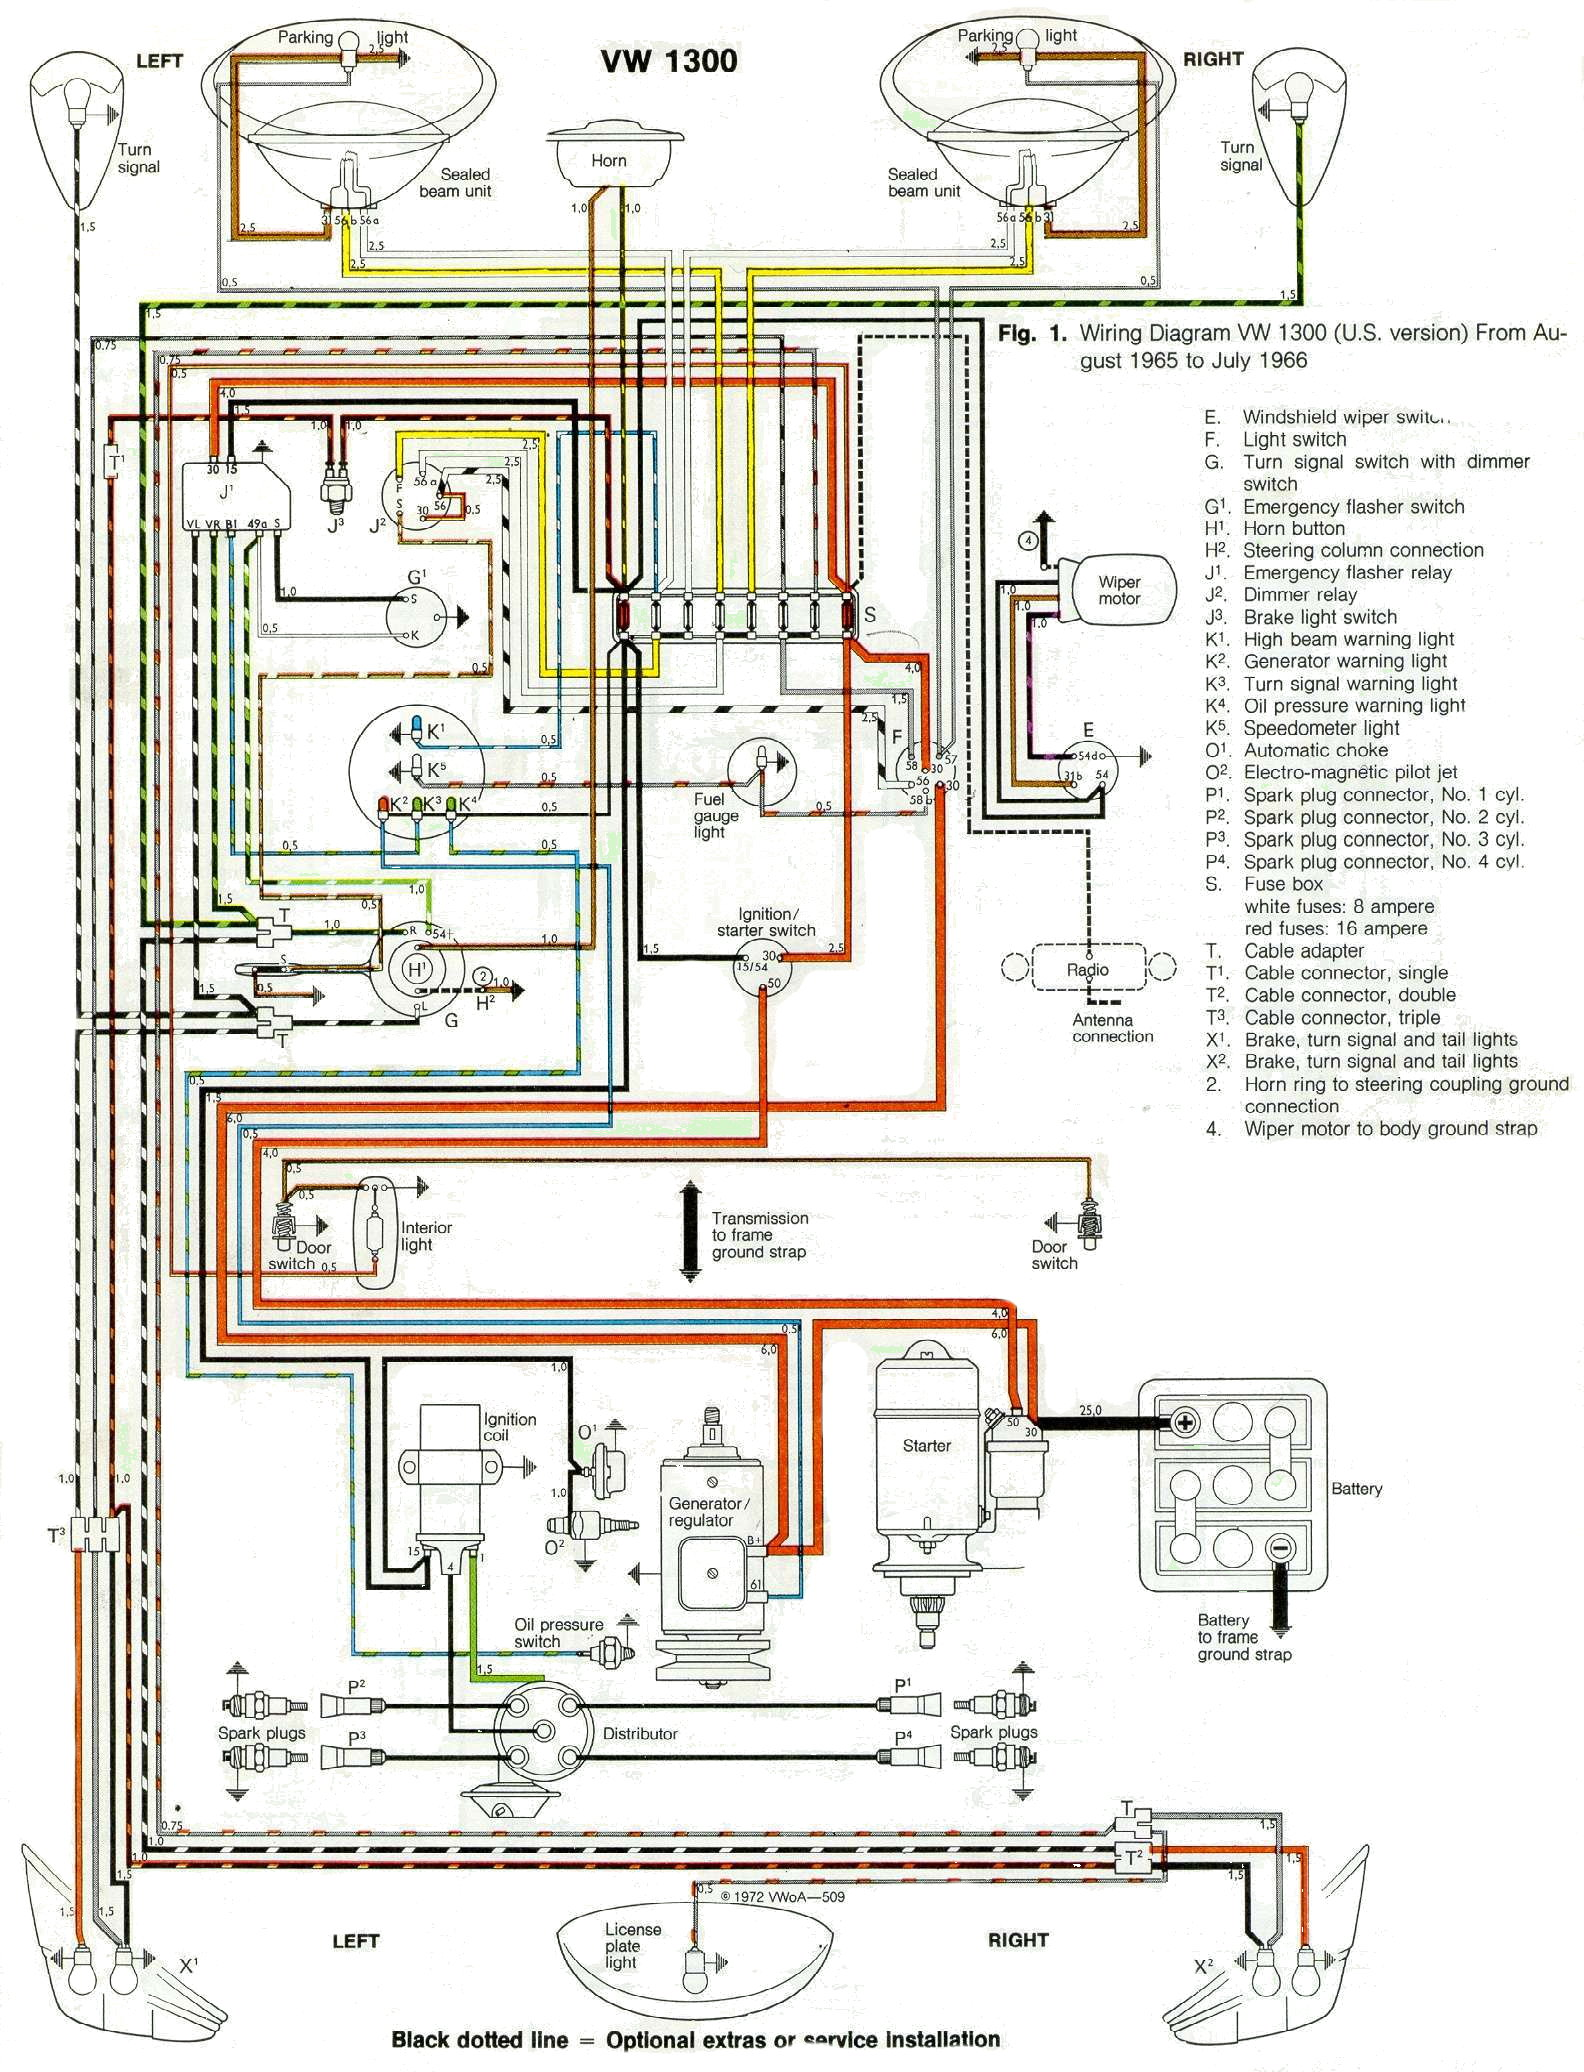 1966 Wiring 1966 wiring diagram 1965 vw beetle wiring diagram at edmiracle.co